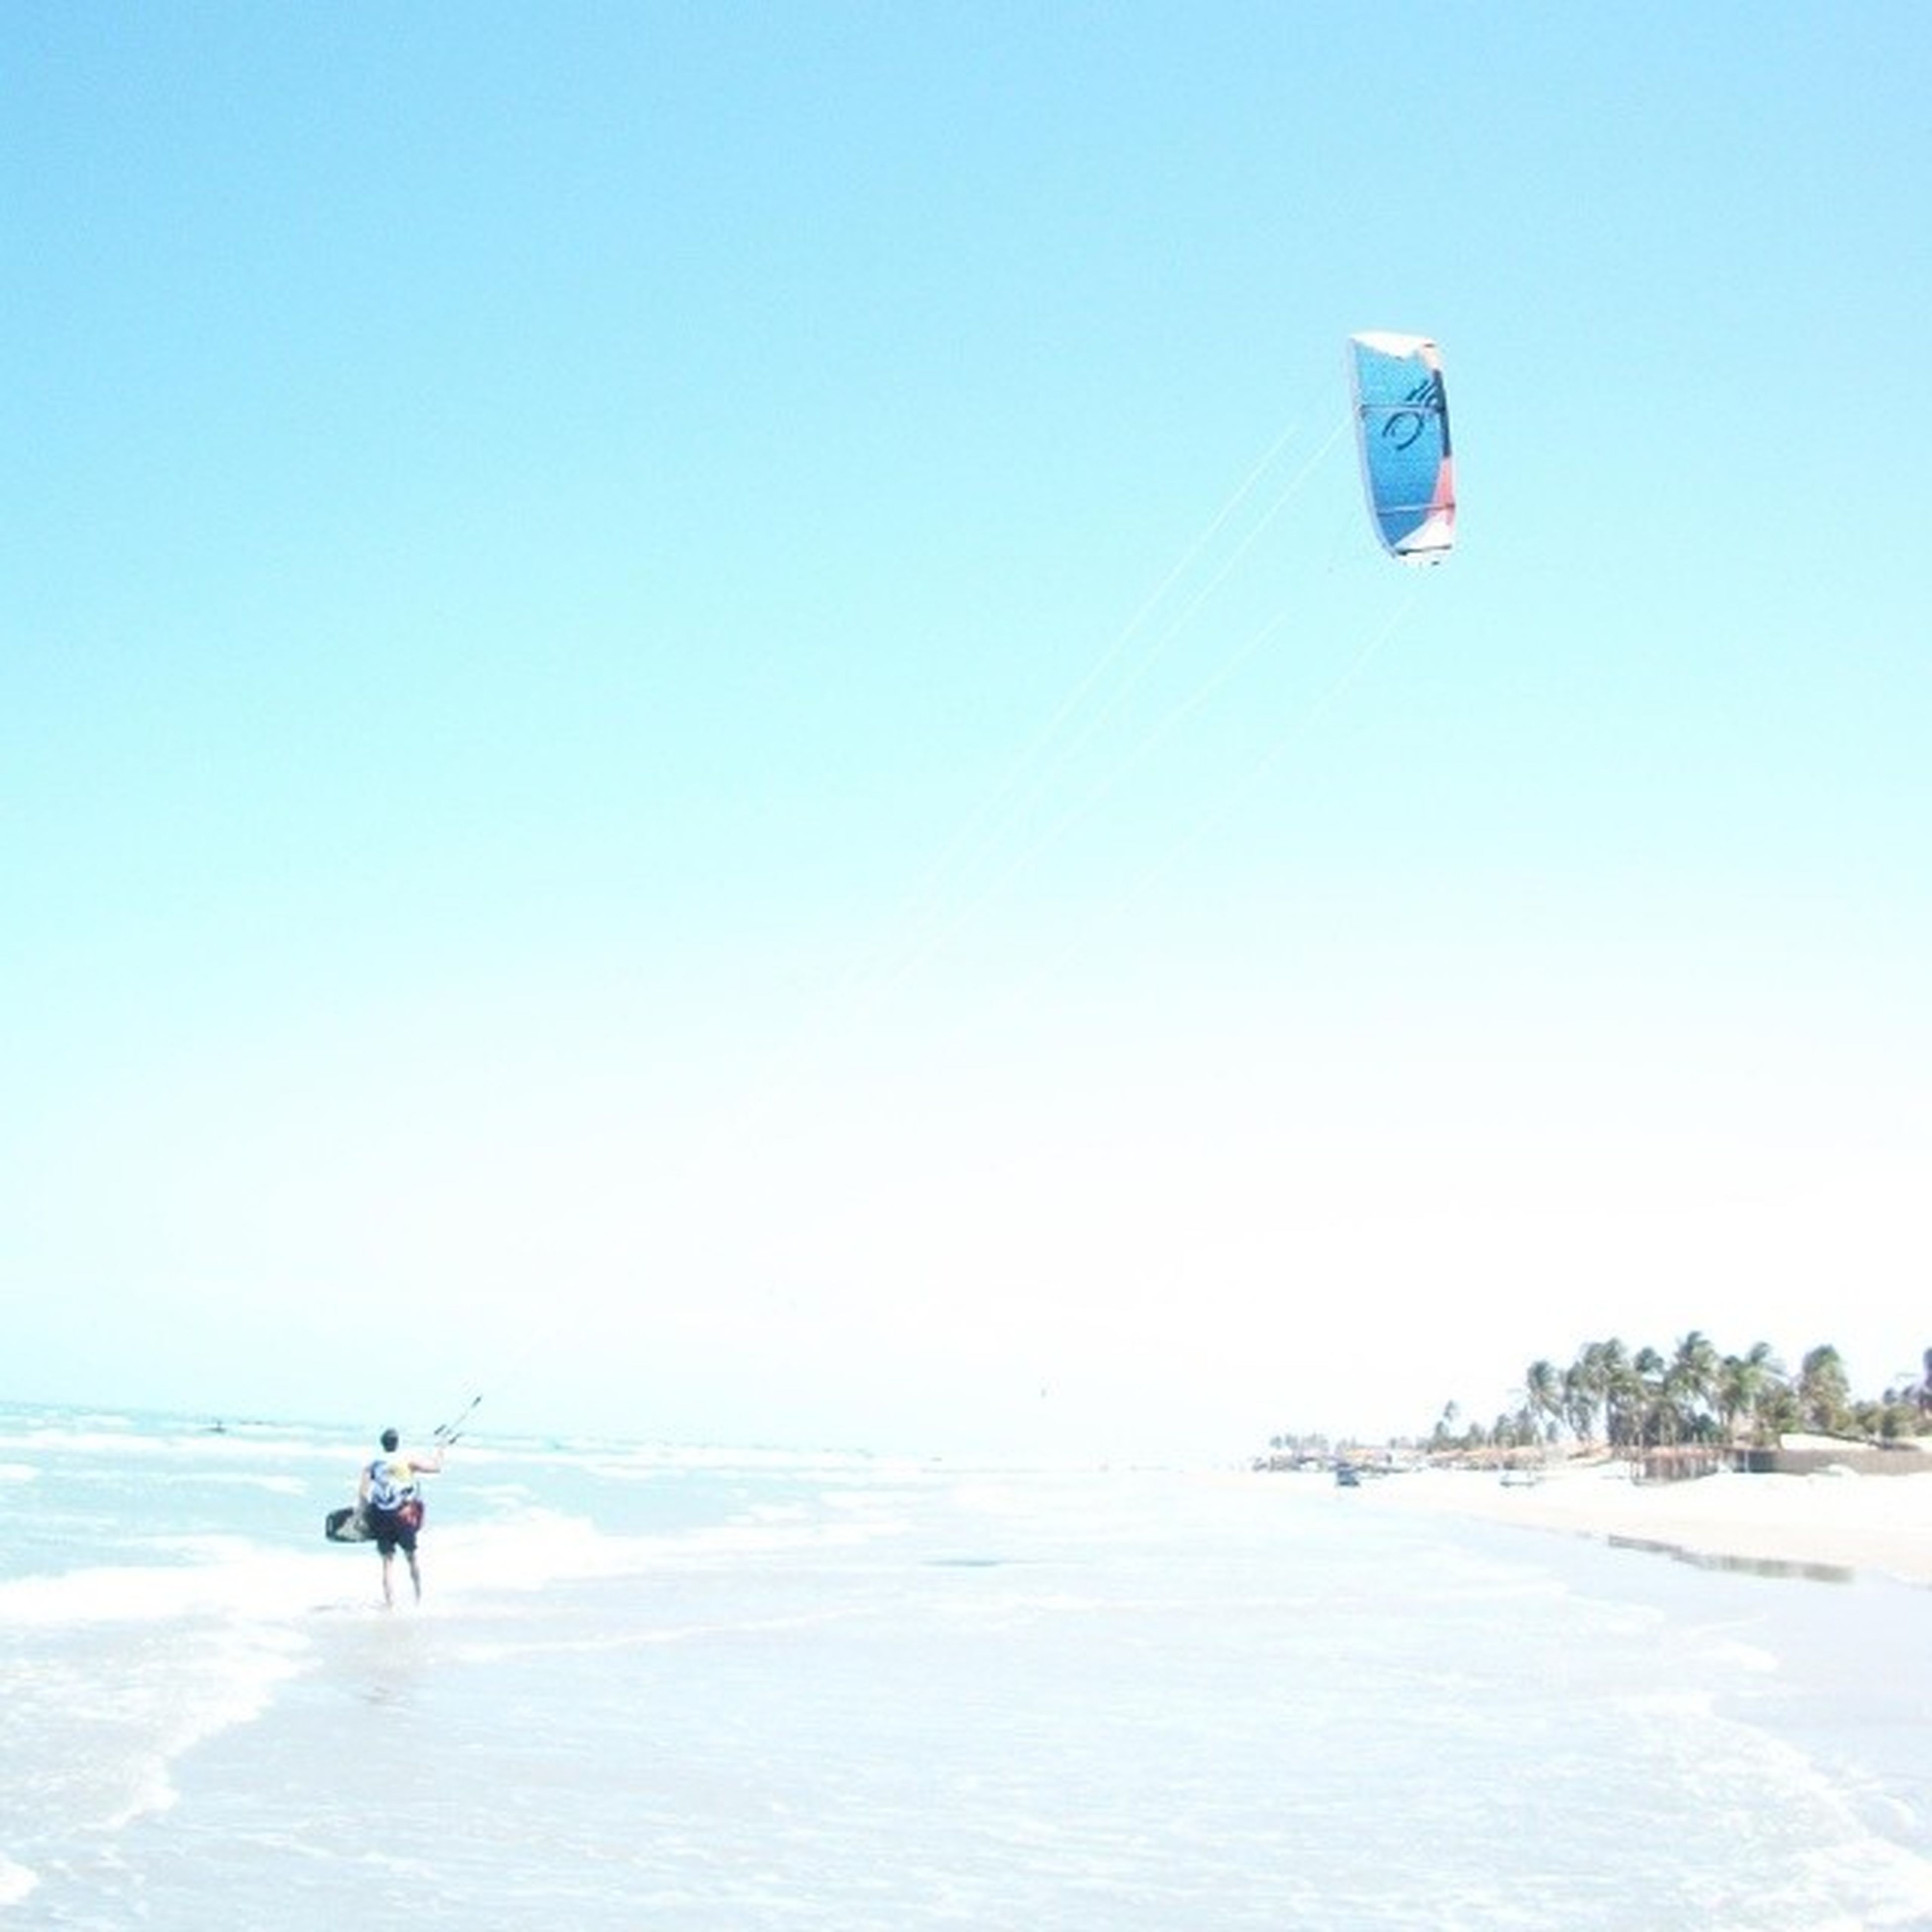 clear sky, leisure activity, copy space, lifestyles, extreme sports, sea, adventure, vacations, sport, blue, water, mid-air, parachute, men, beach, transportation, horizon over water, fun